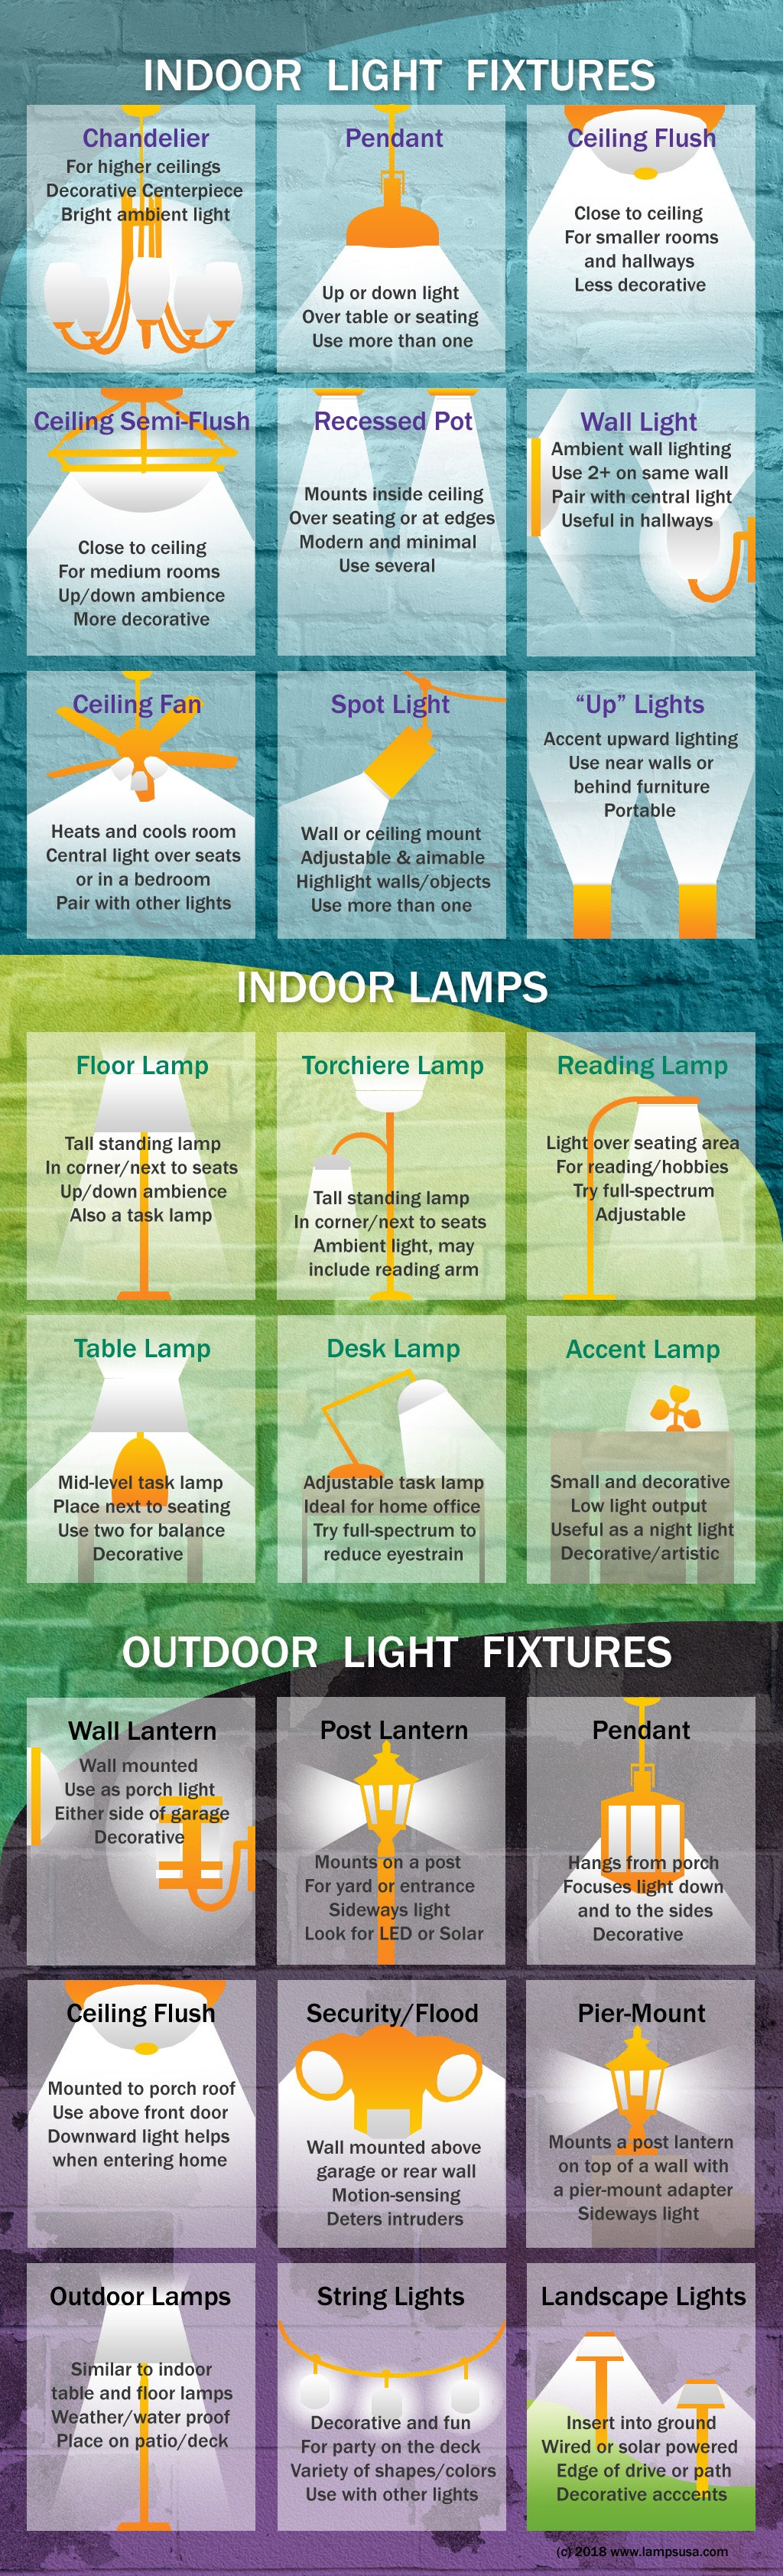 Indoor light fixtures types of lighting fixtures and their benefits